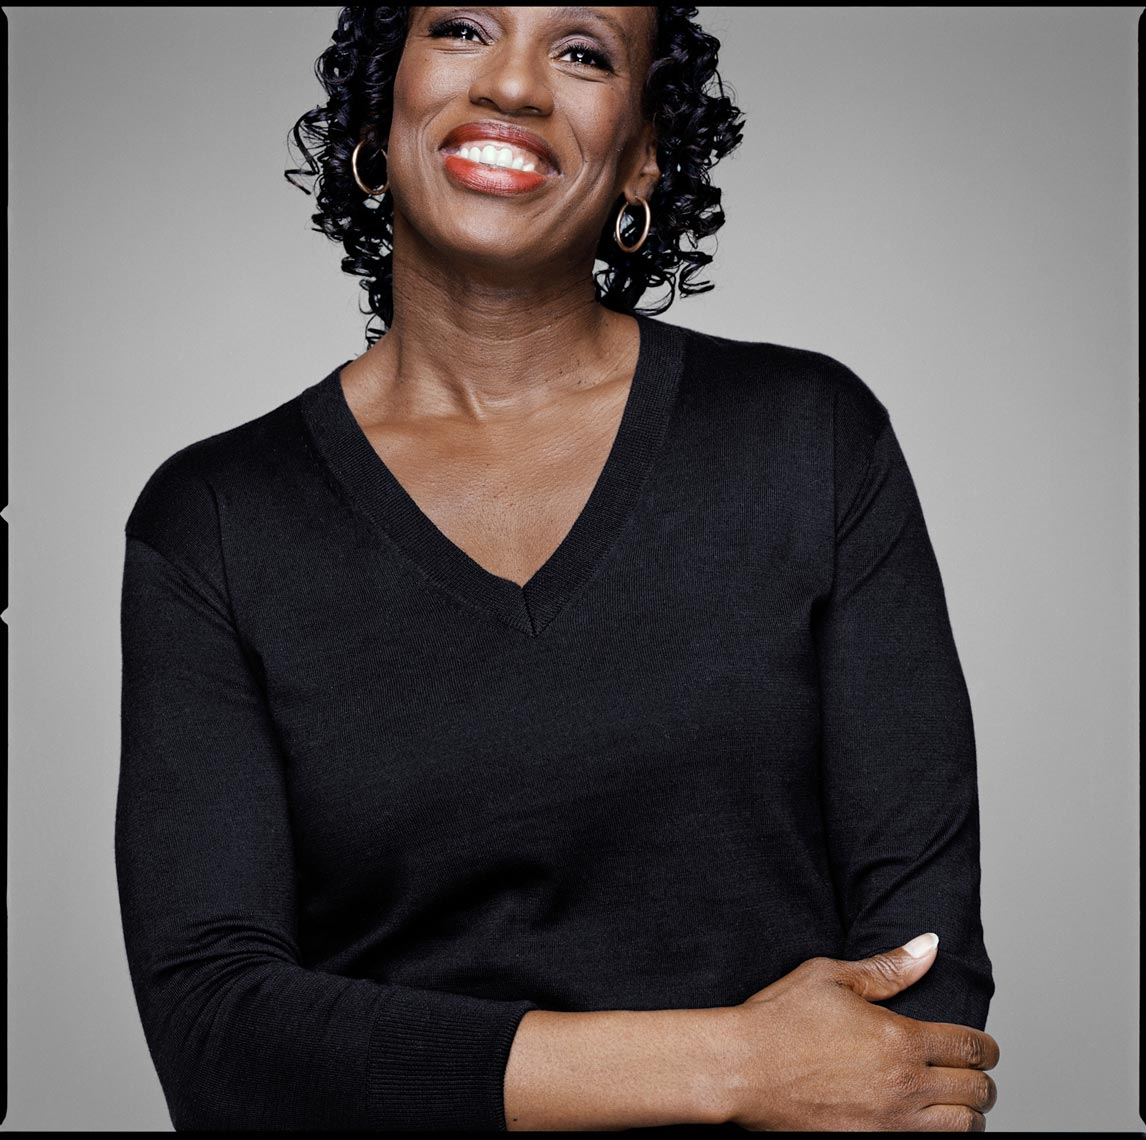 Jackie Joyner Kersee - Los Angeles, CA - New York Times Magazine